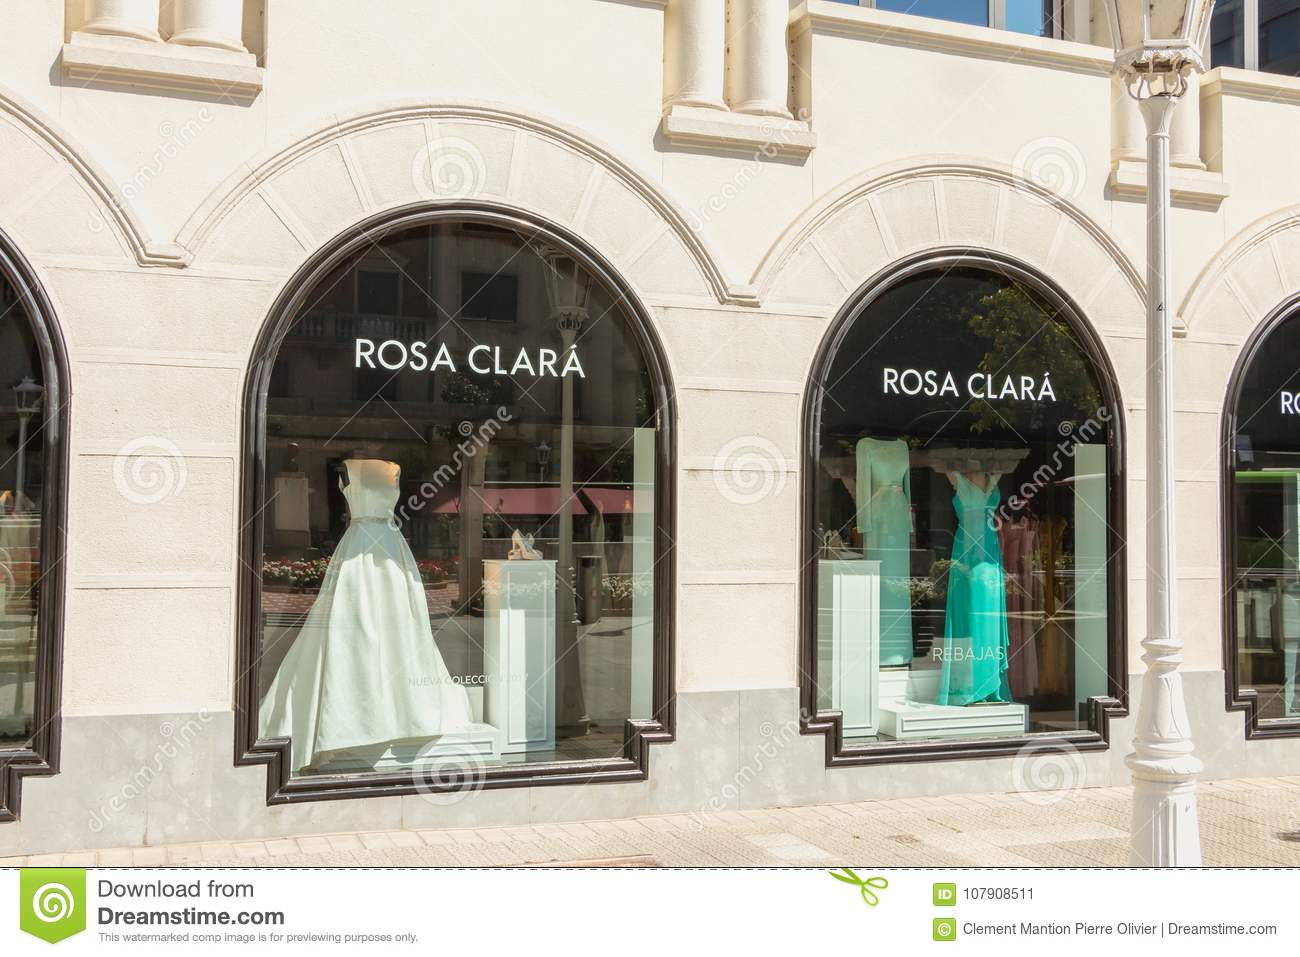 Showcase of a luxury clothes store Rosa Clara